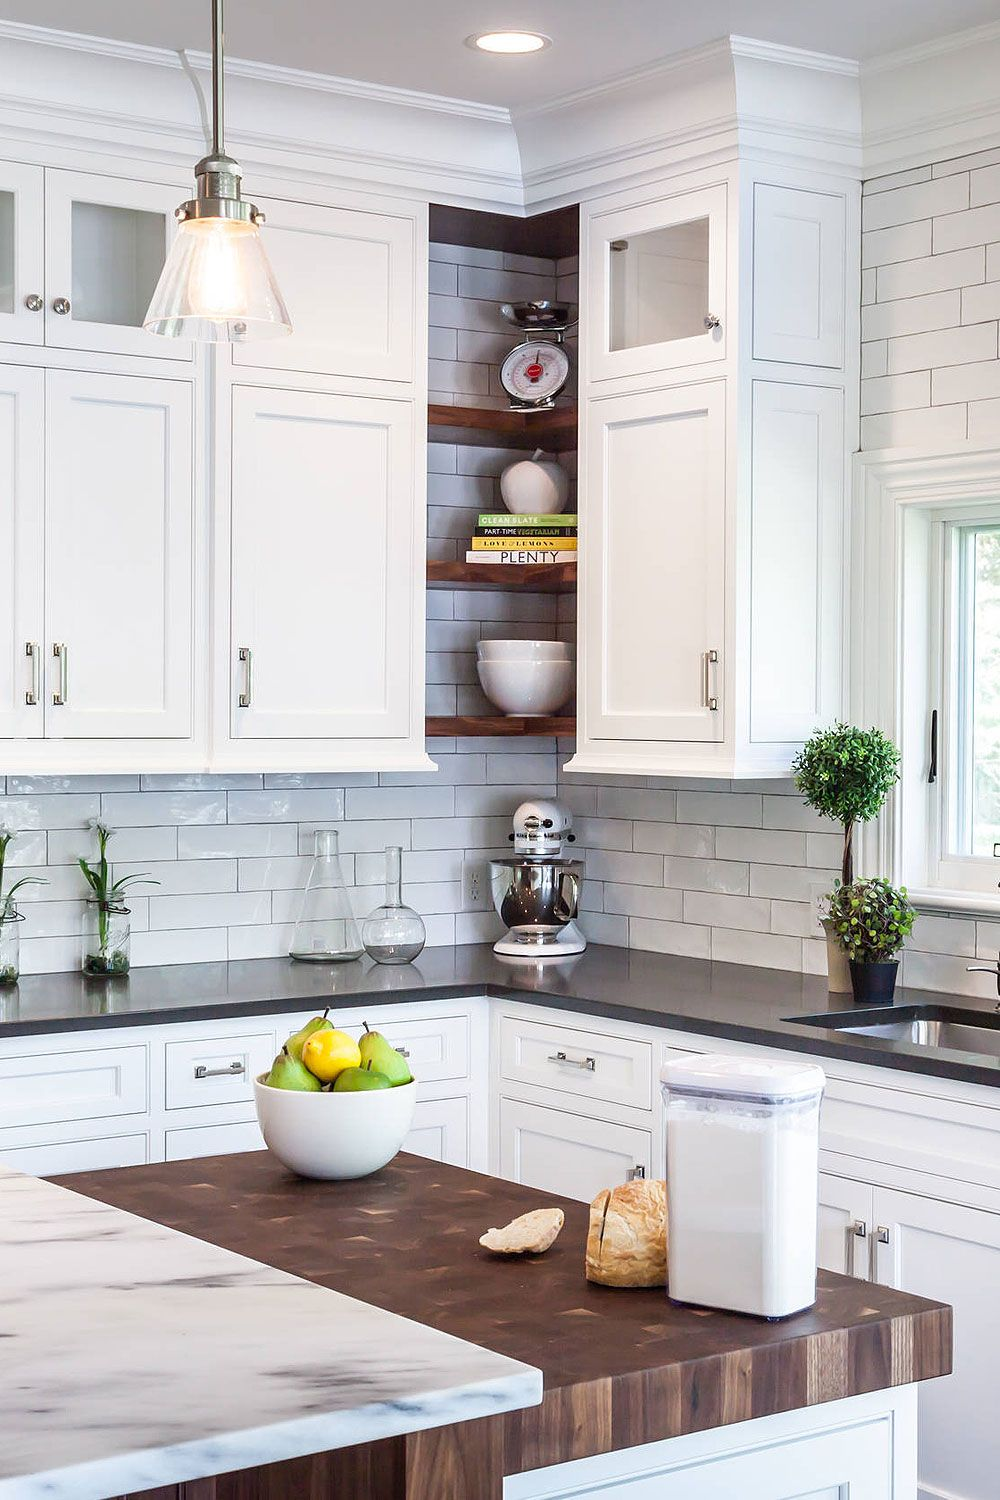 50+ Black Countertop Backsplash Ideas (Tile Designs, Tips ... on Backsplash Ideas For Black Countertops  id=72746